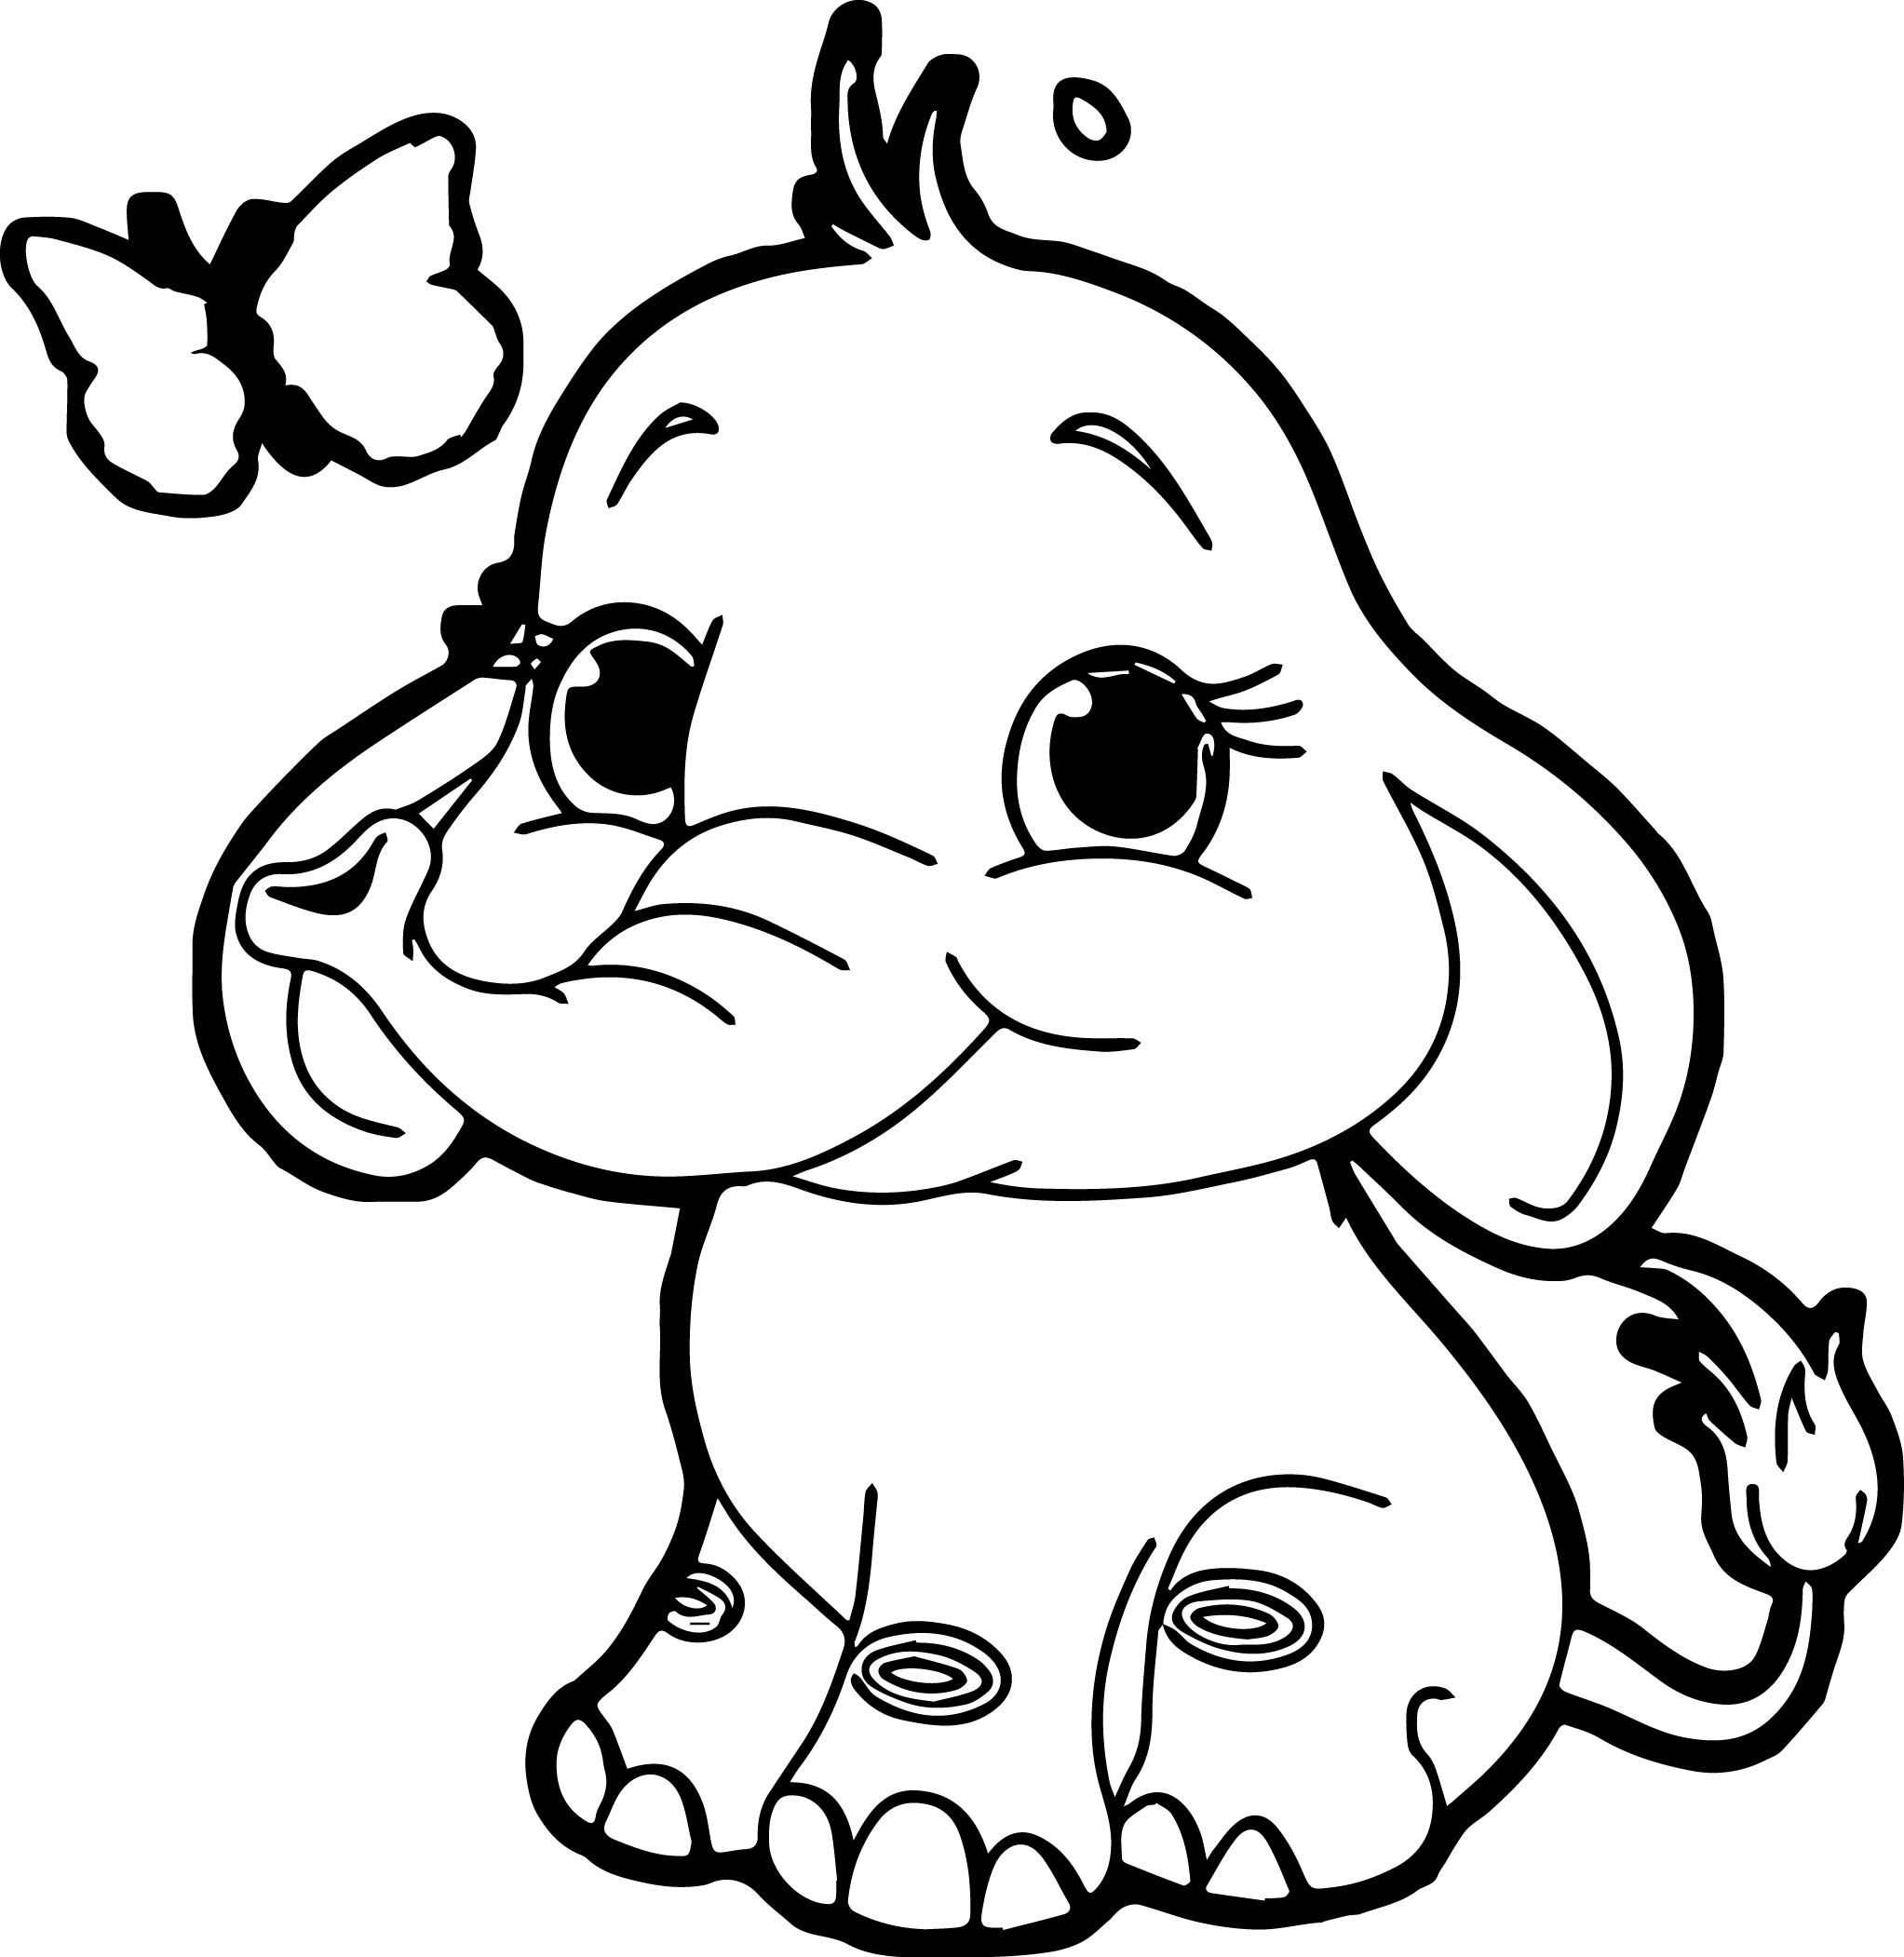 Nice Butterfly Elephant Coloring Page Elephant Coloring Page Elephant Drawing Elephant Colouring Pictures